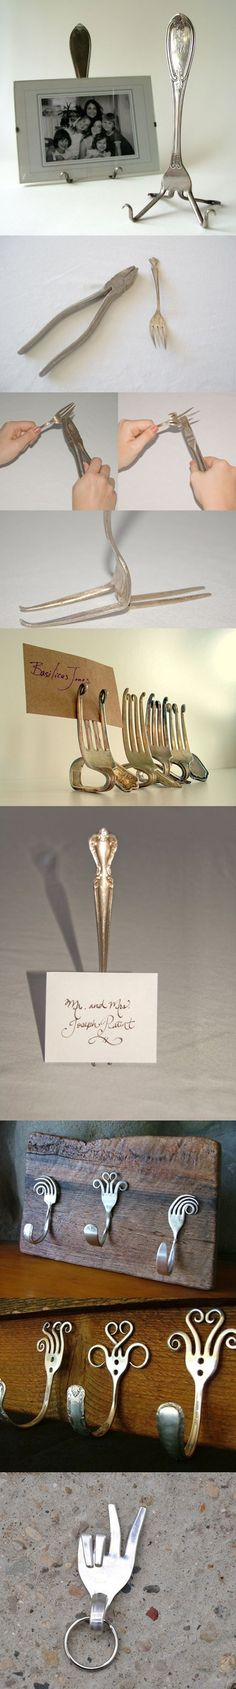 Fork art - buy some old ones at Everything but Granny's Panties?